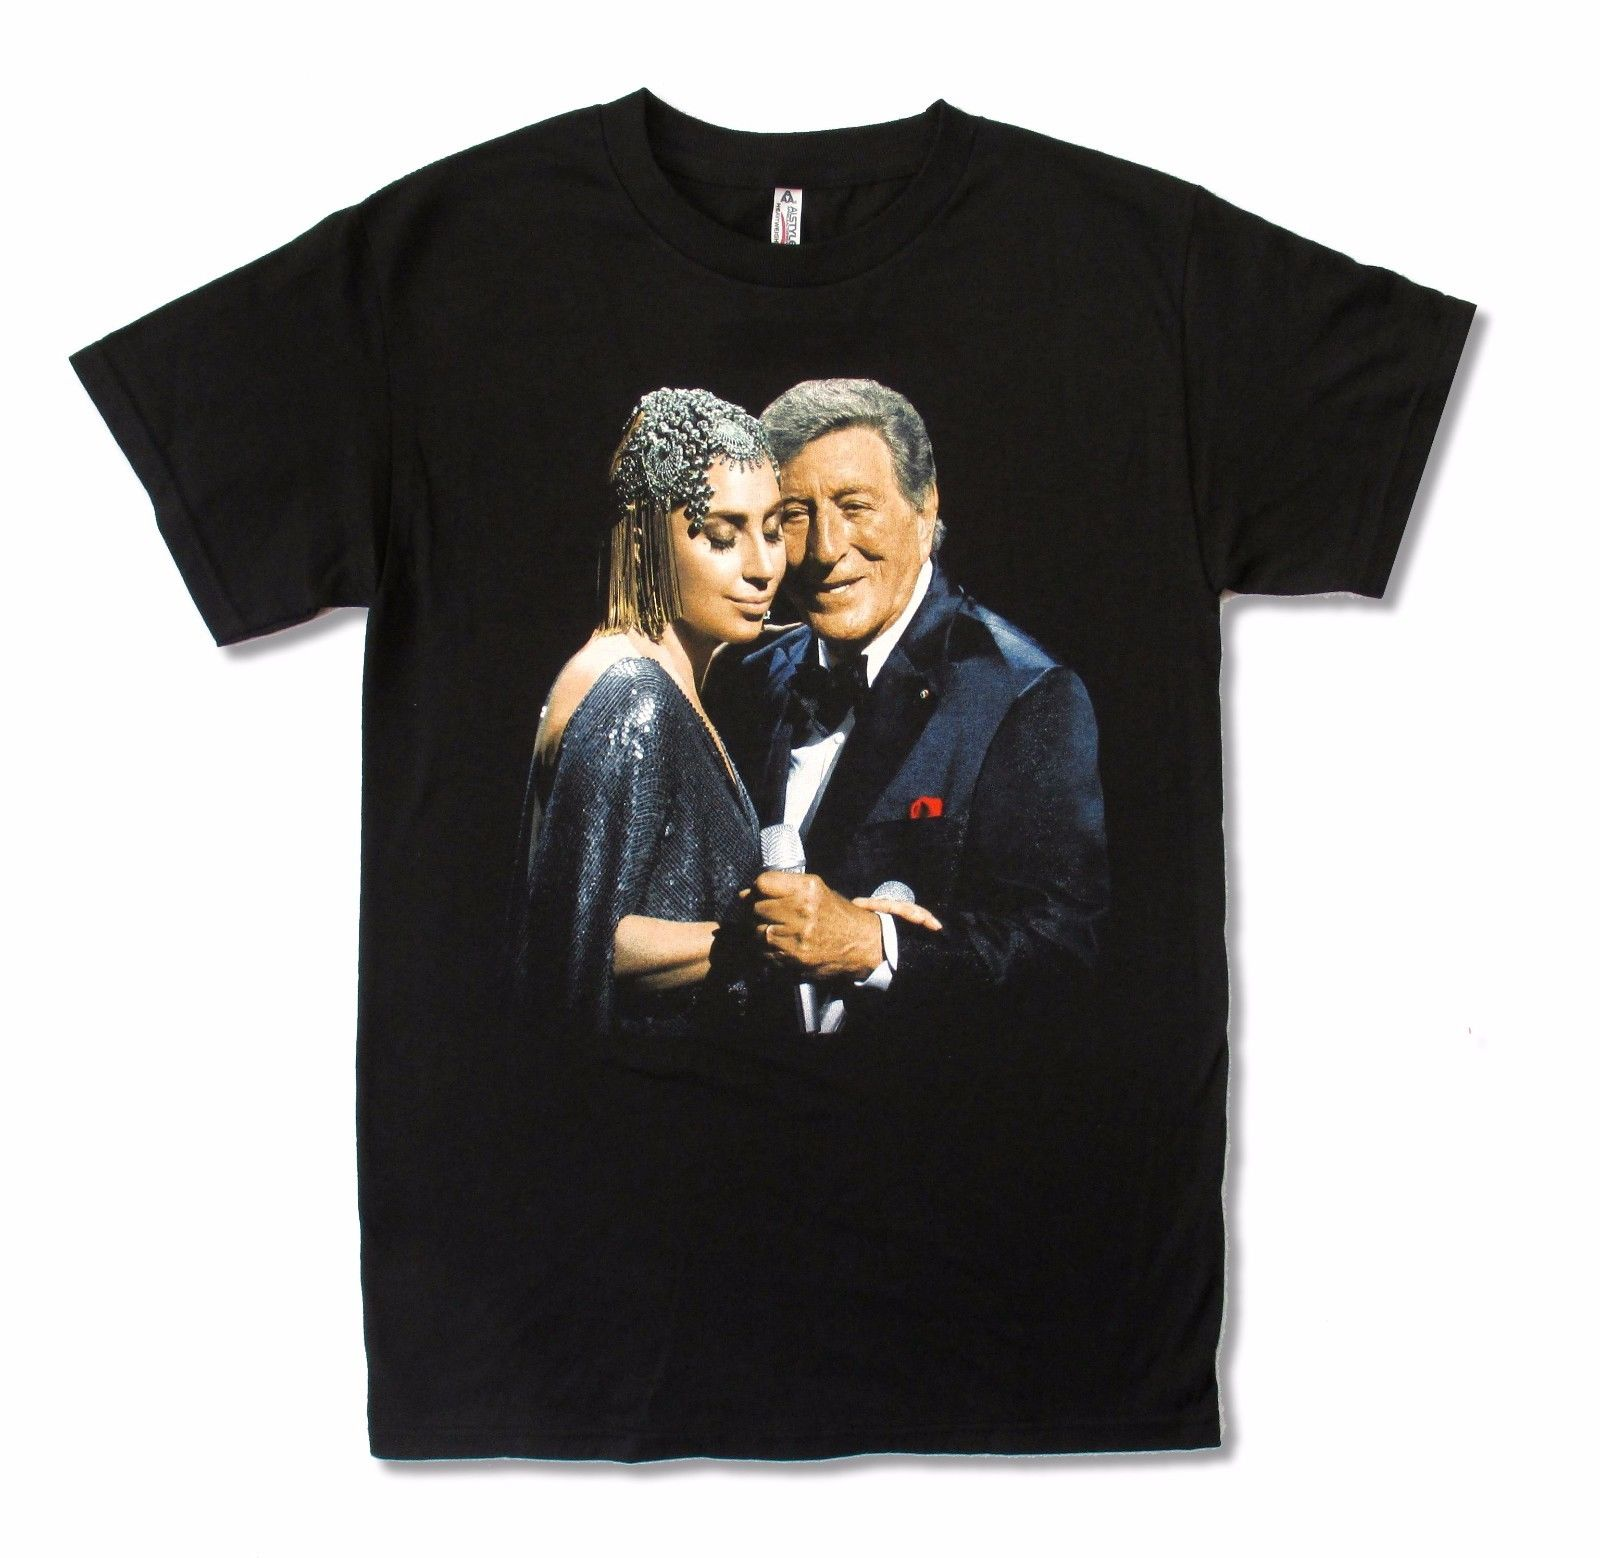 Lady Gaga Tony Bennett Cheek To Cheek Tour Uomo Camicia nera Top T - Abbigliamento da uomo